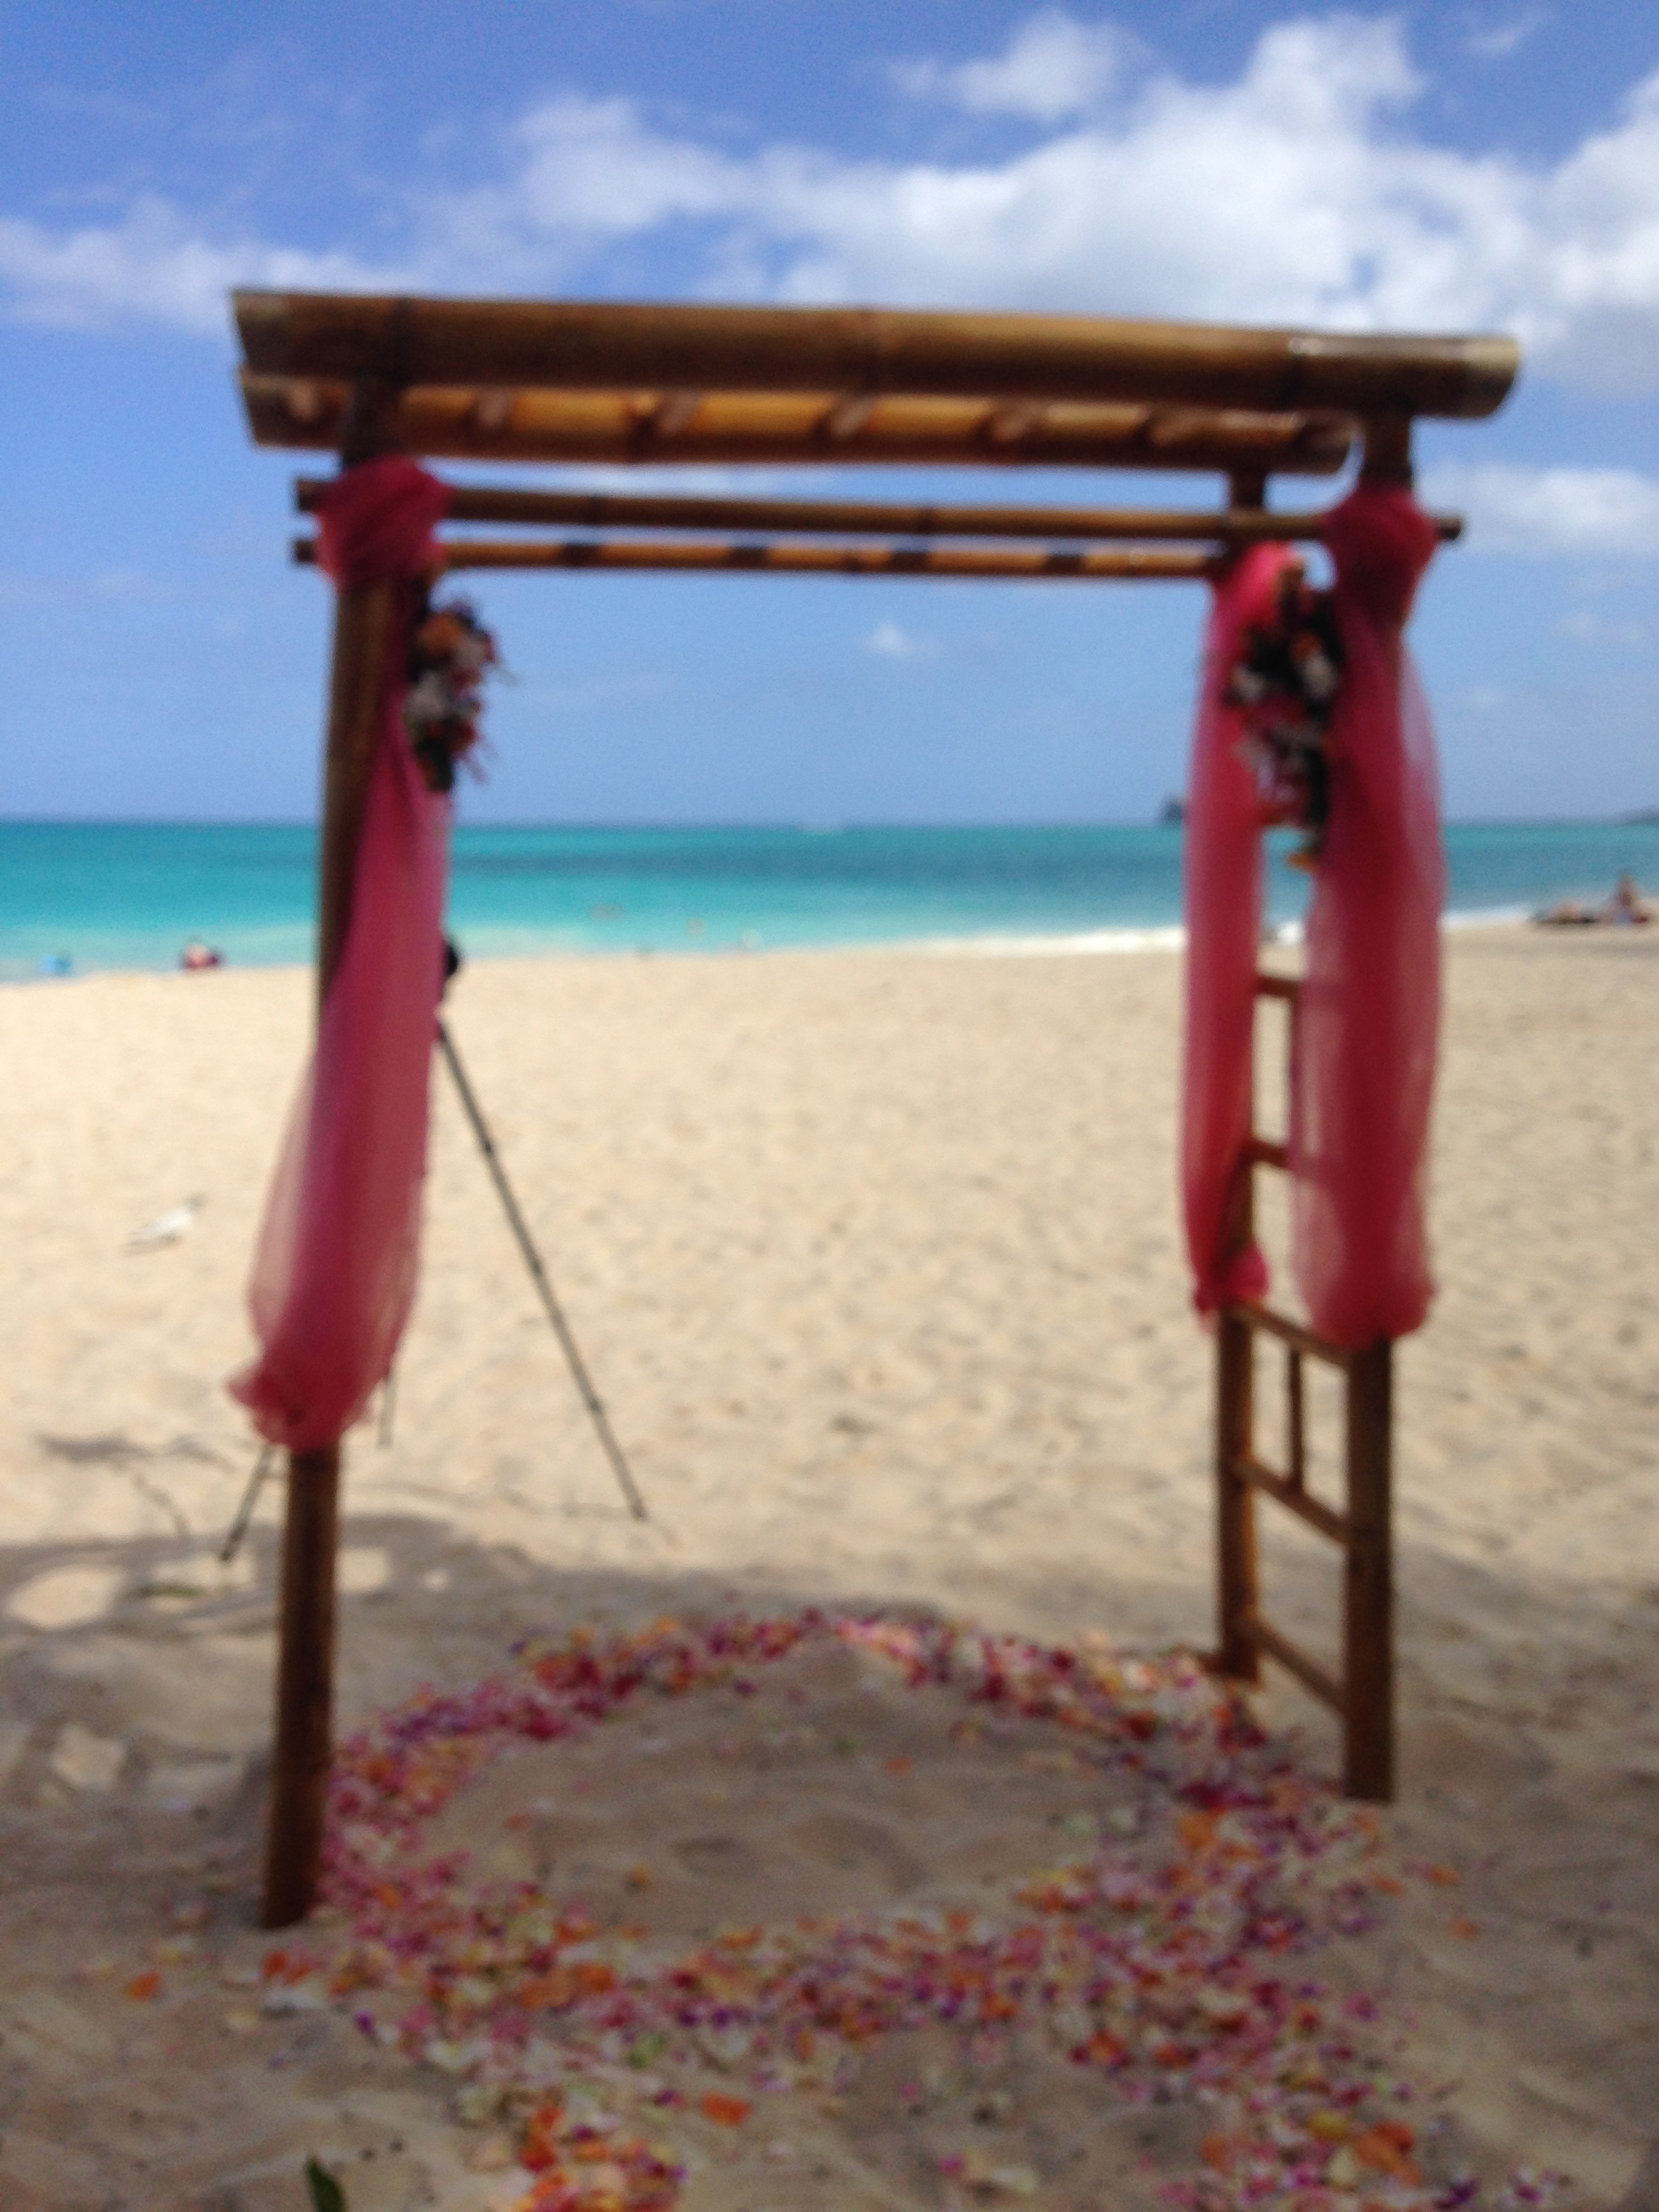 The beautiful wedding arch with Waimanalo Bay in the backdrop (minus the gentlemen on their beach chairs of course)